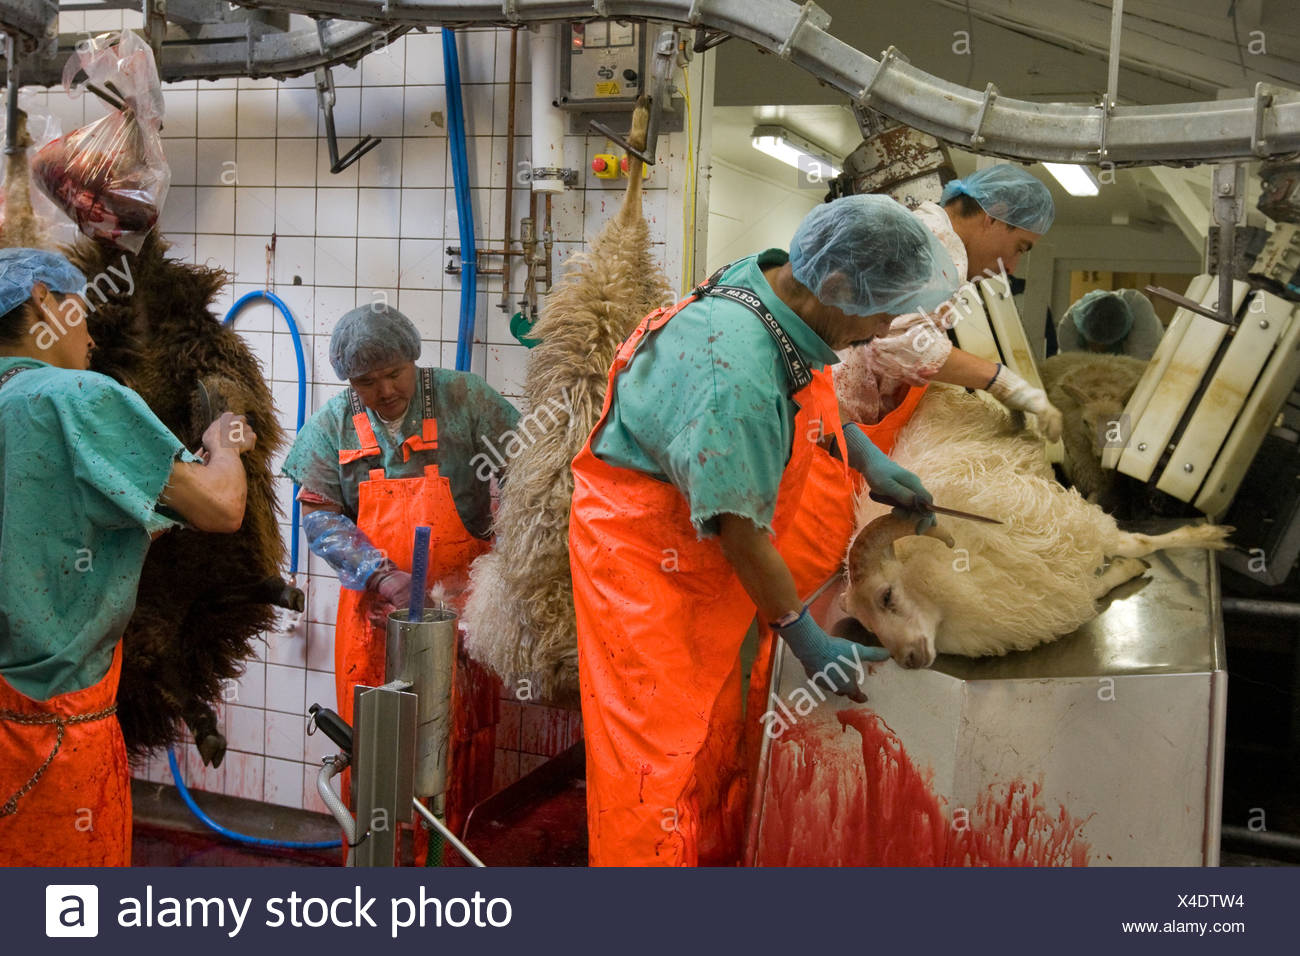 Neqi Slaughterhouse which processes 22,000 Greenland sheep